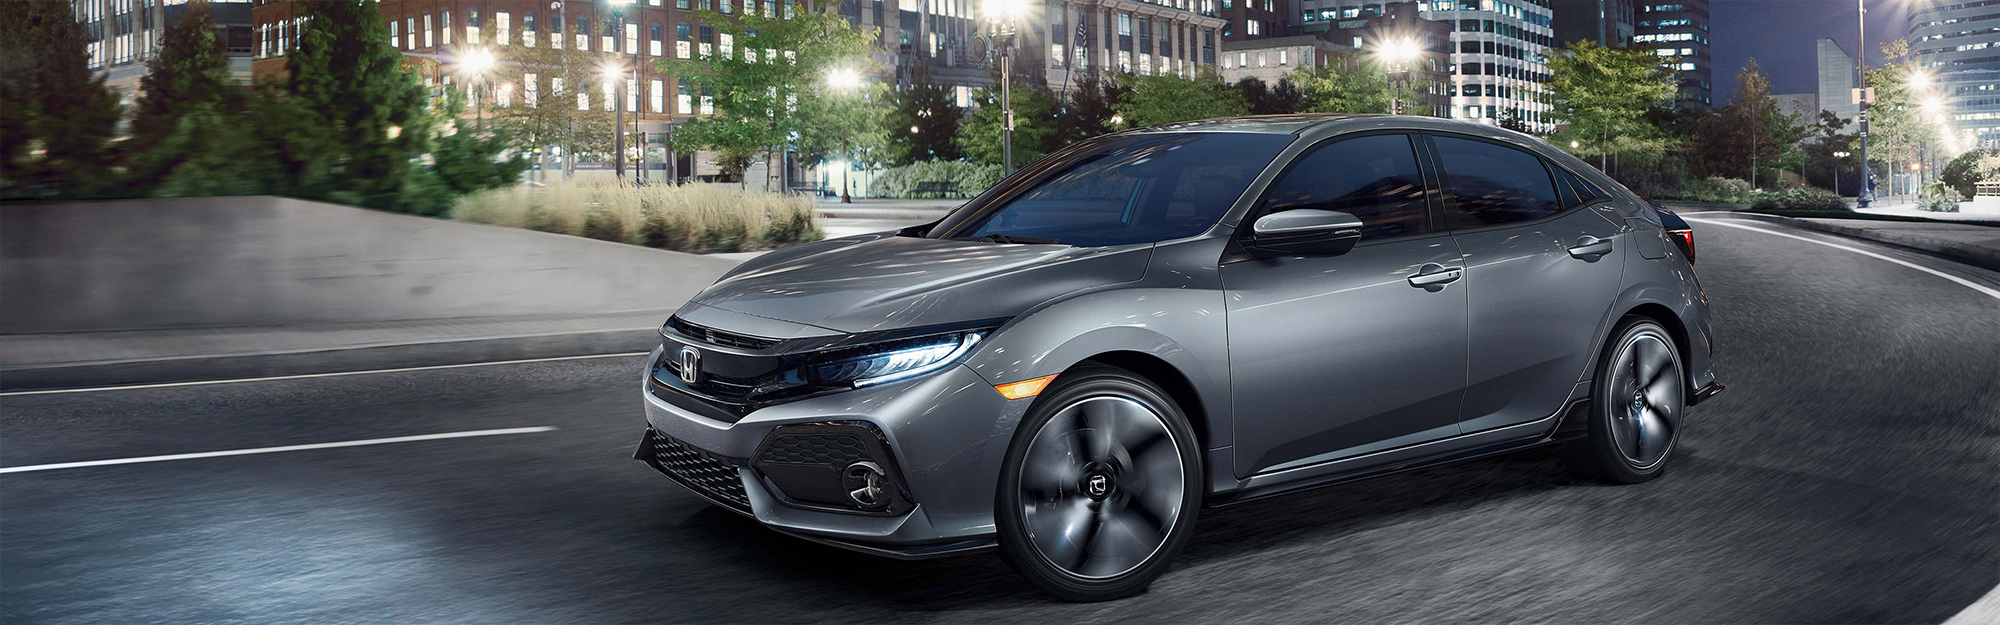 2019 Honda Civic Hatchback in dark grey